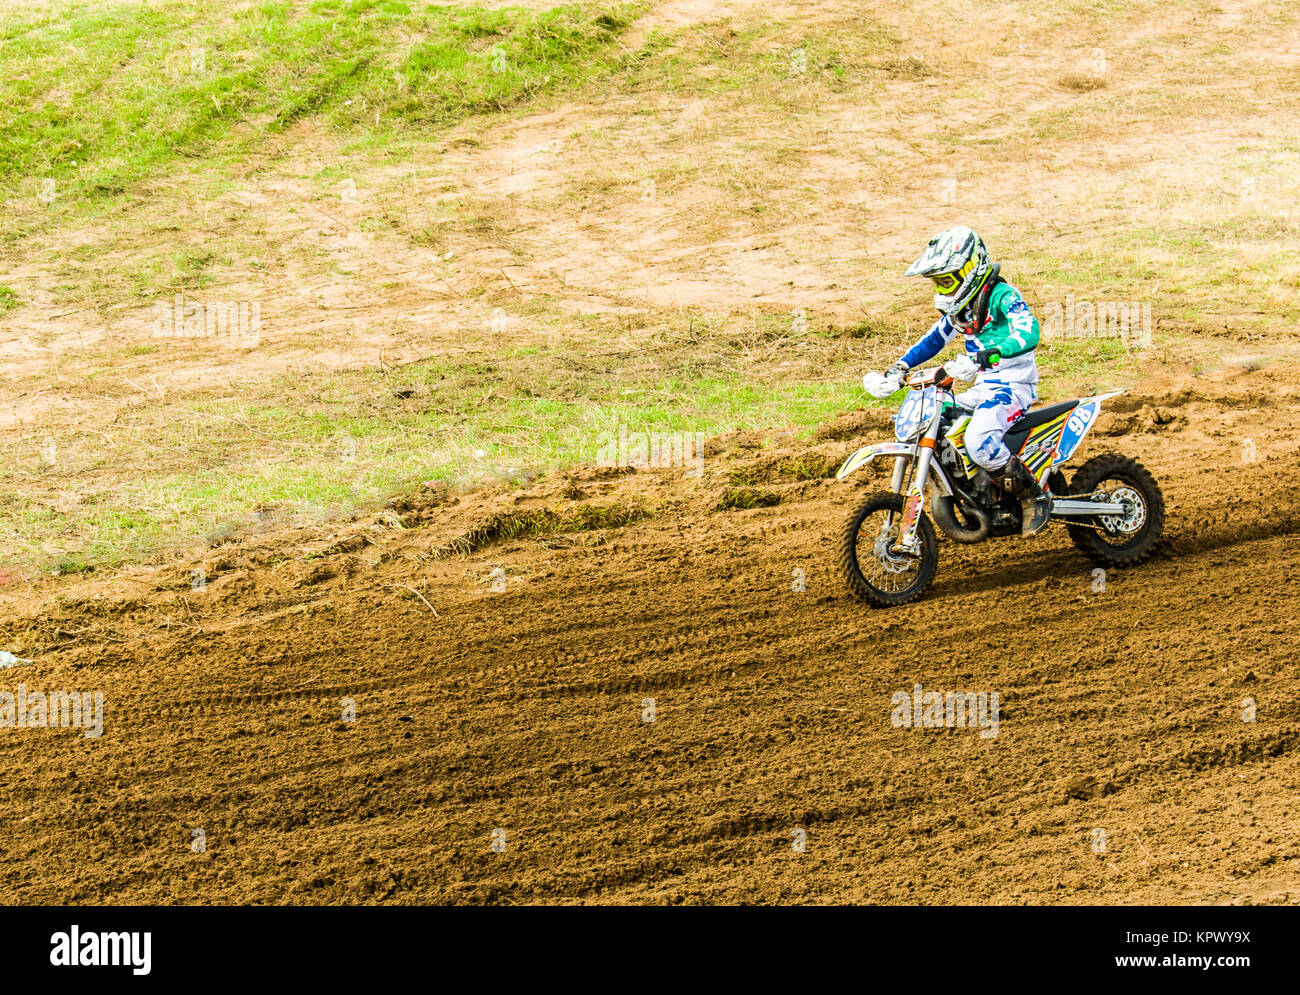 Extreme sport. A child on a motorcycle rides the sand. Motocross ...